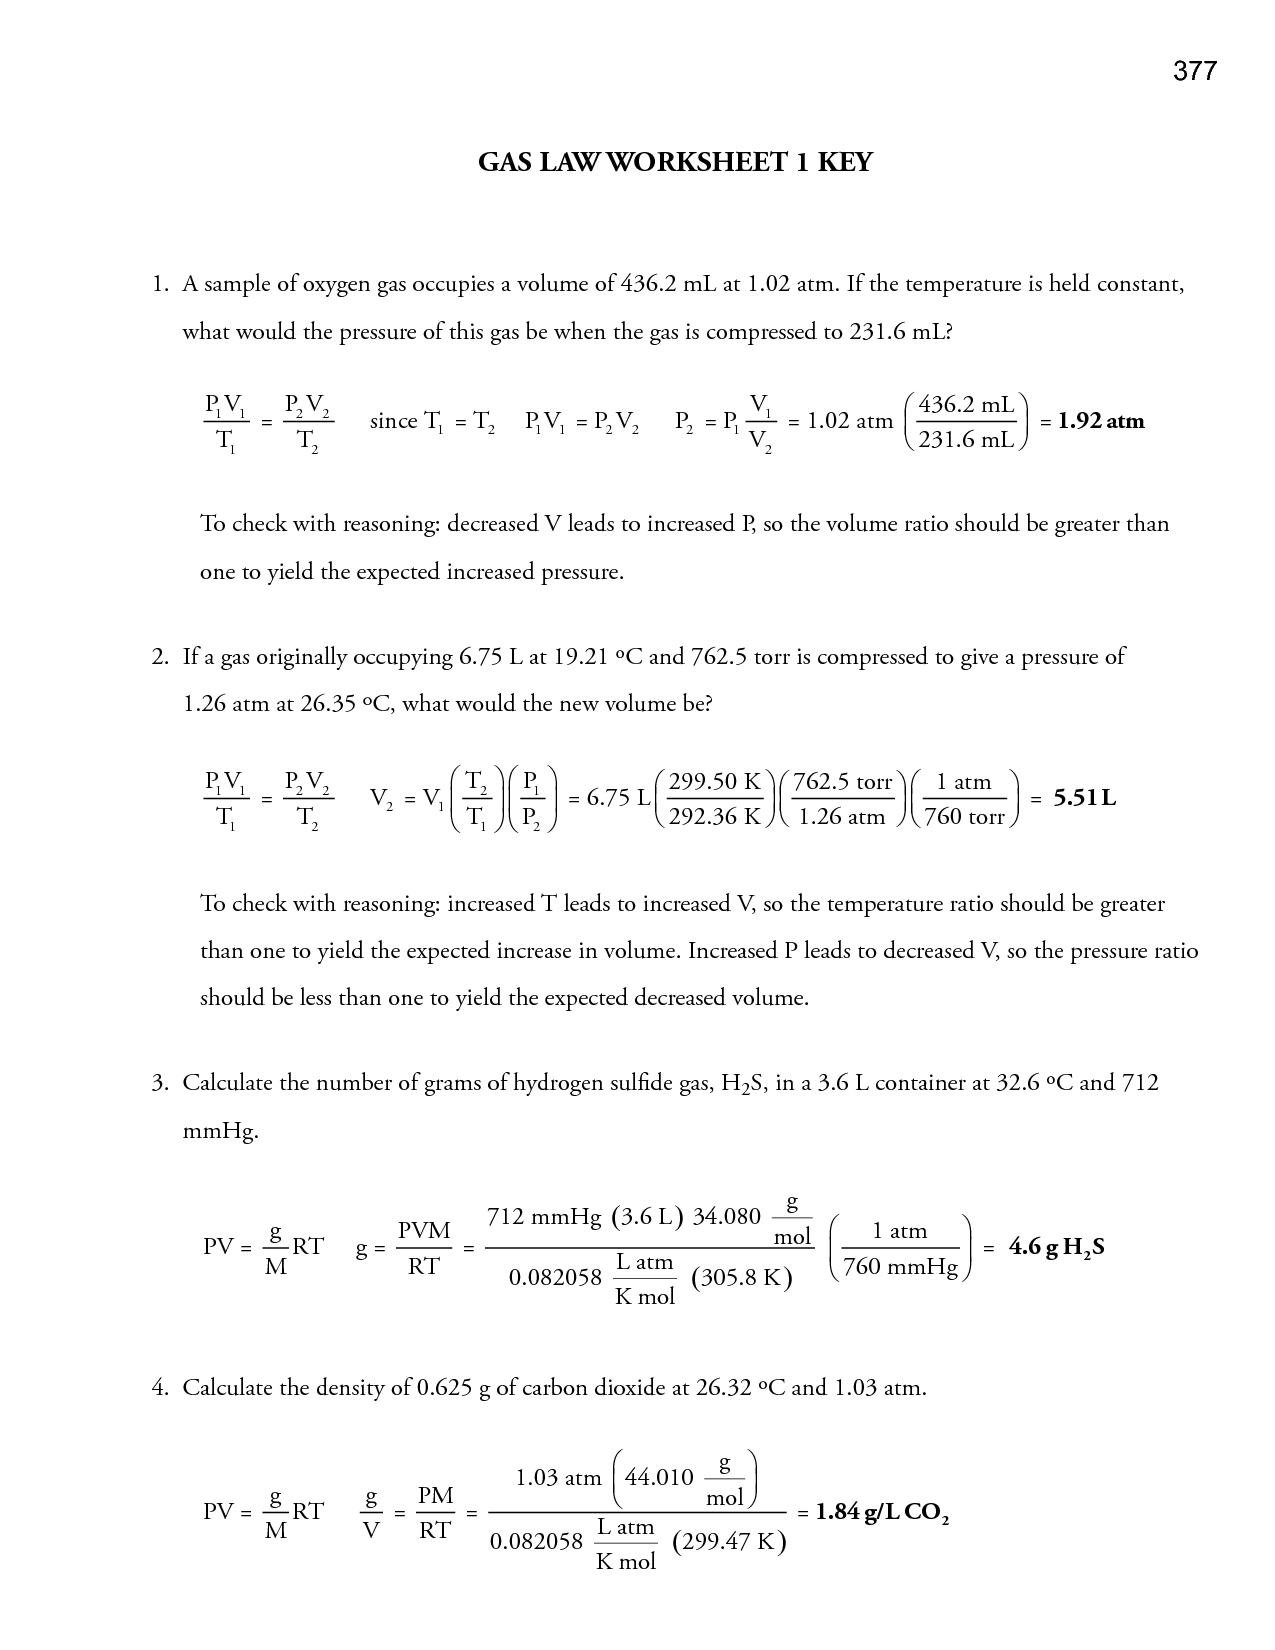 15 Best Images of Boyles Law Problems Worksheet  Boyles Law Worksheet, Boyles Law Worksheet